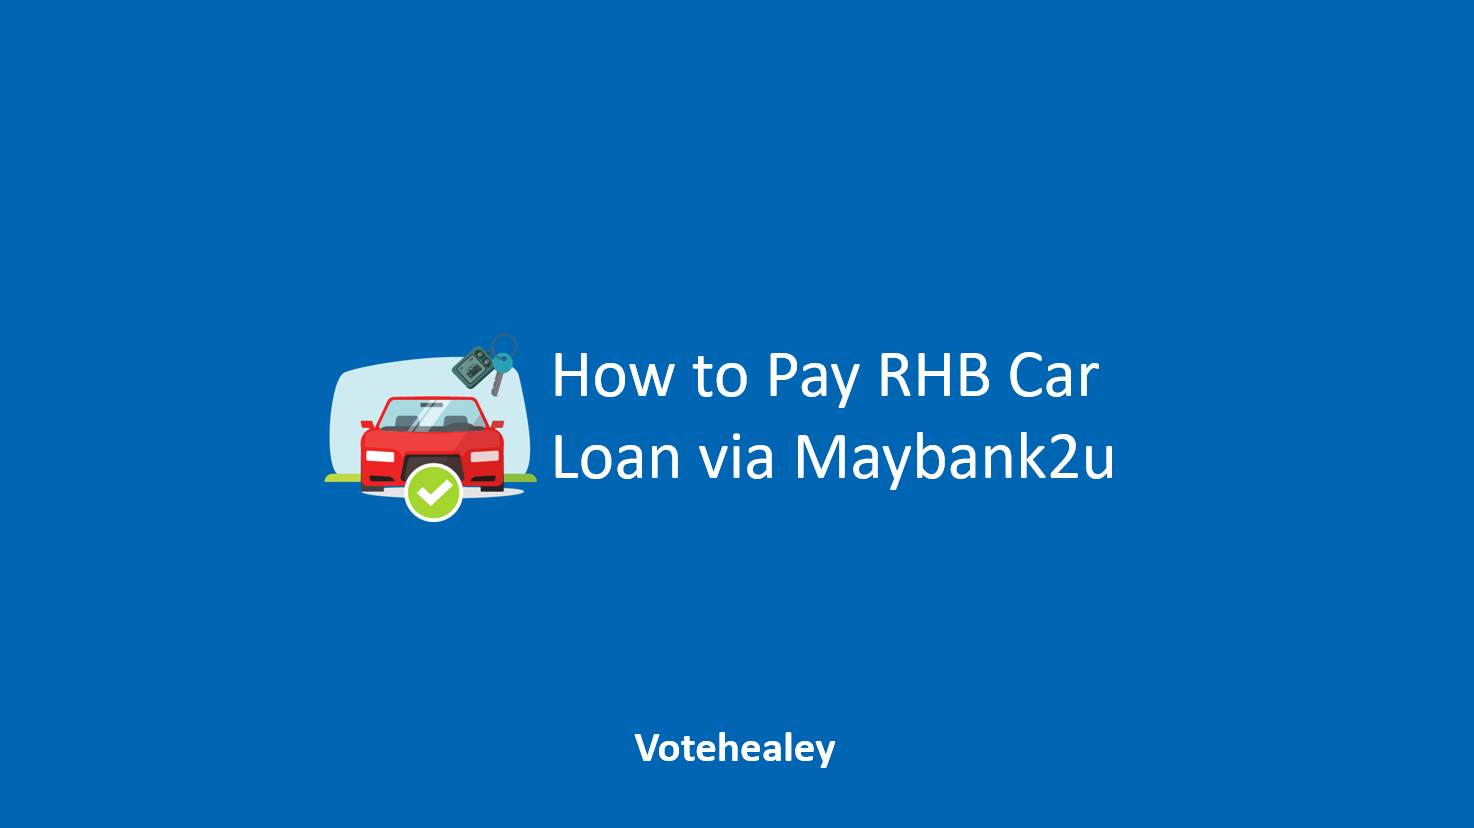 How to Pay RHB Car Loan via Maybank2u